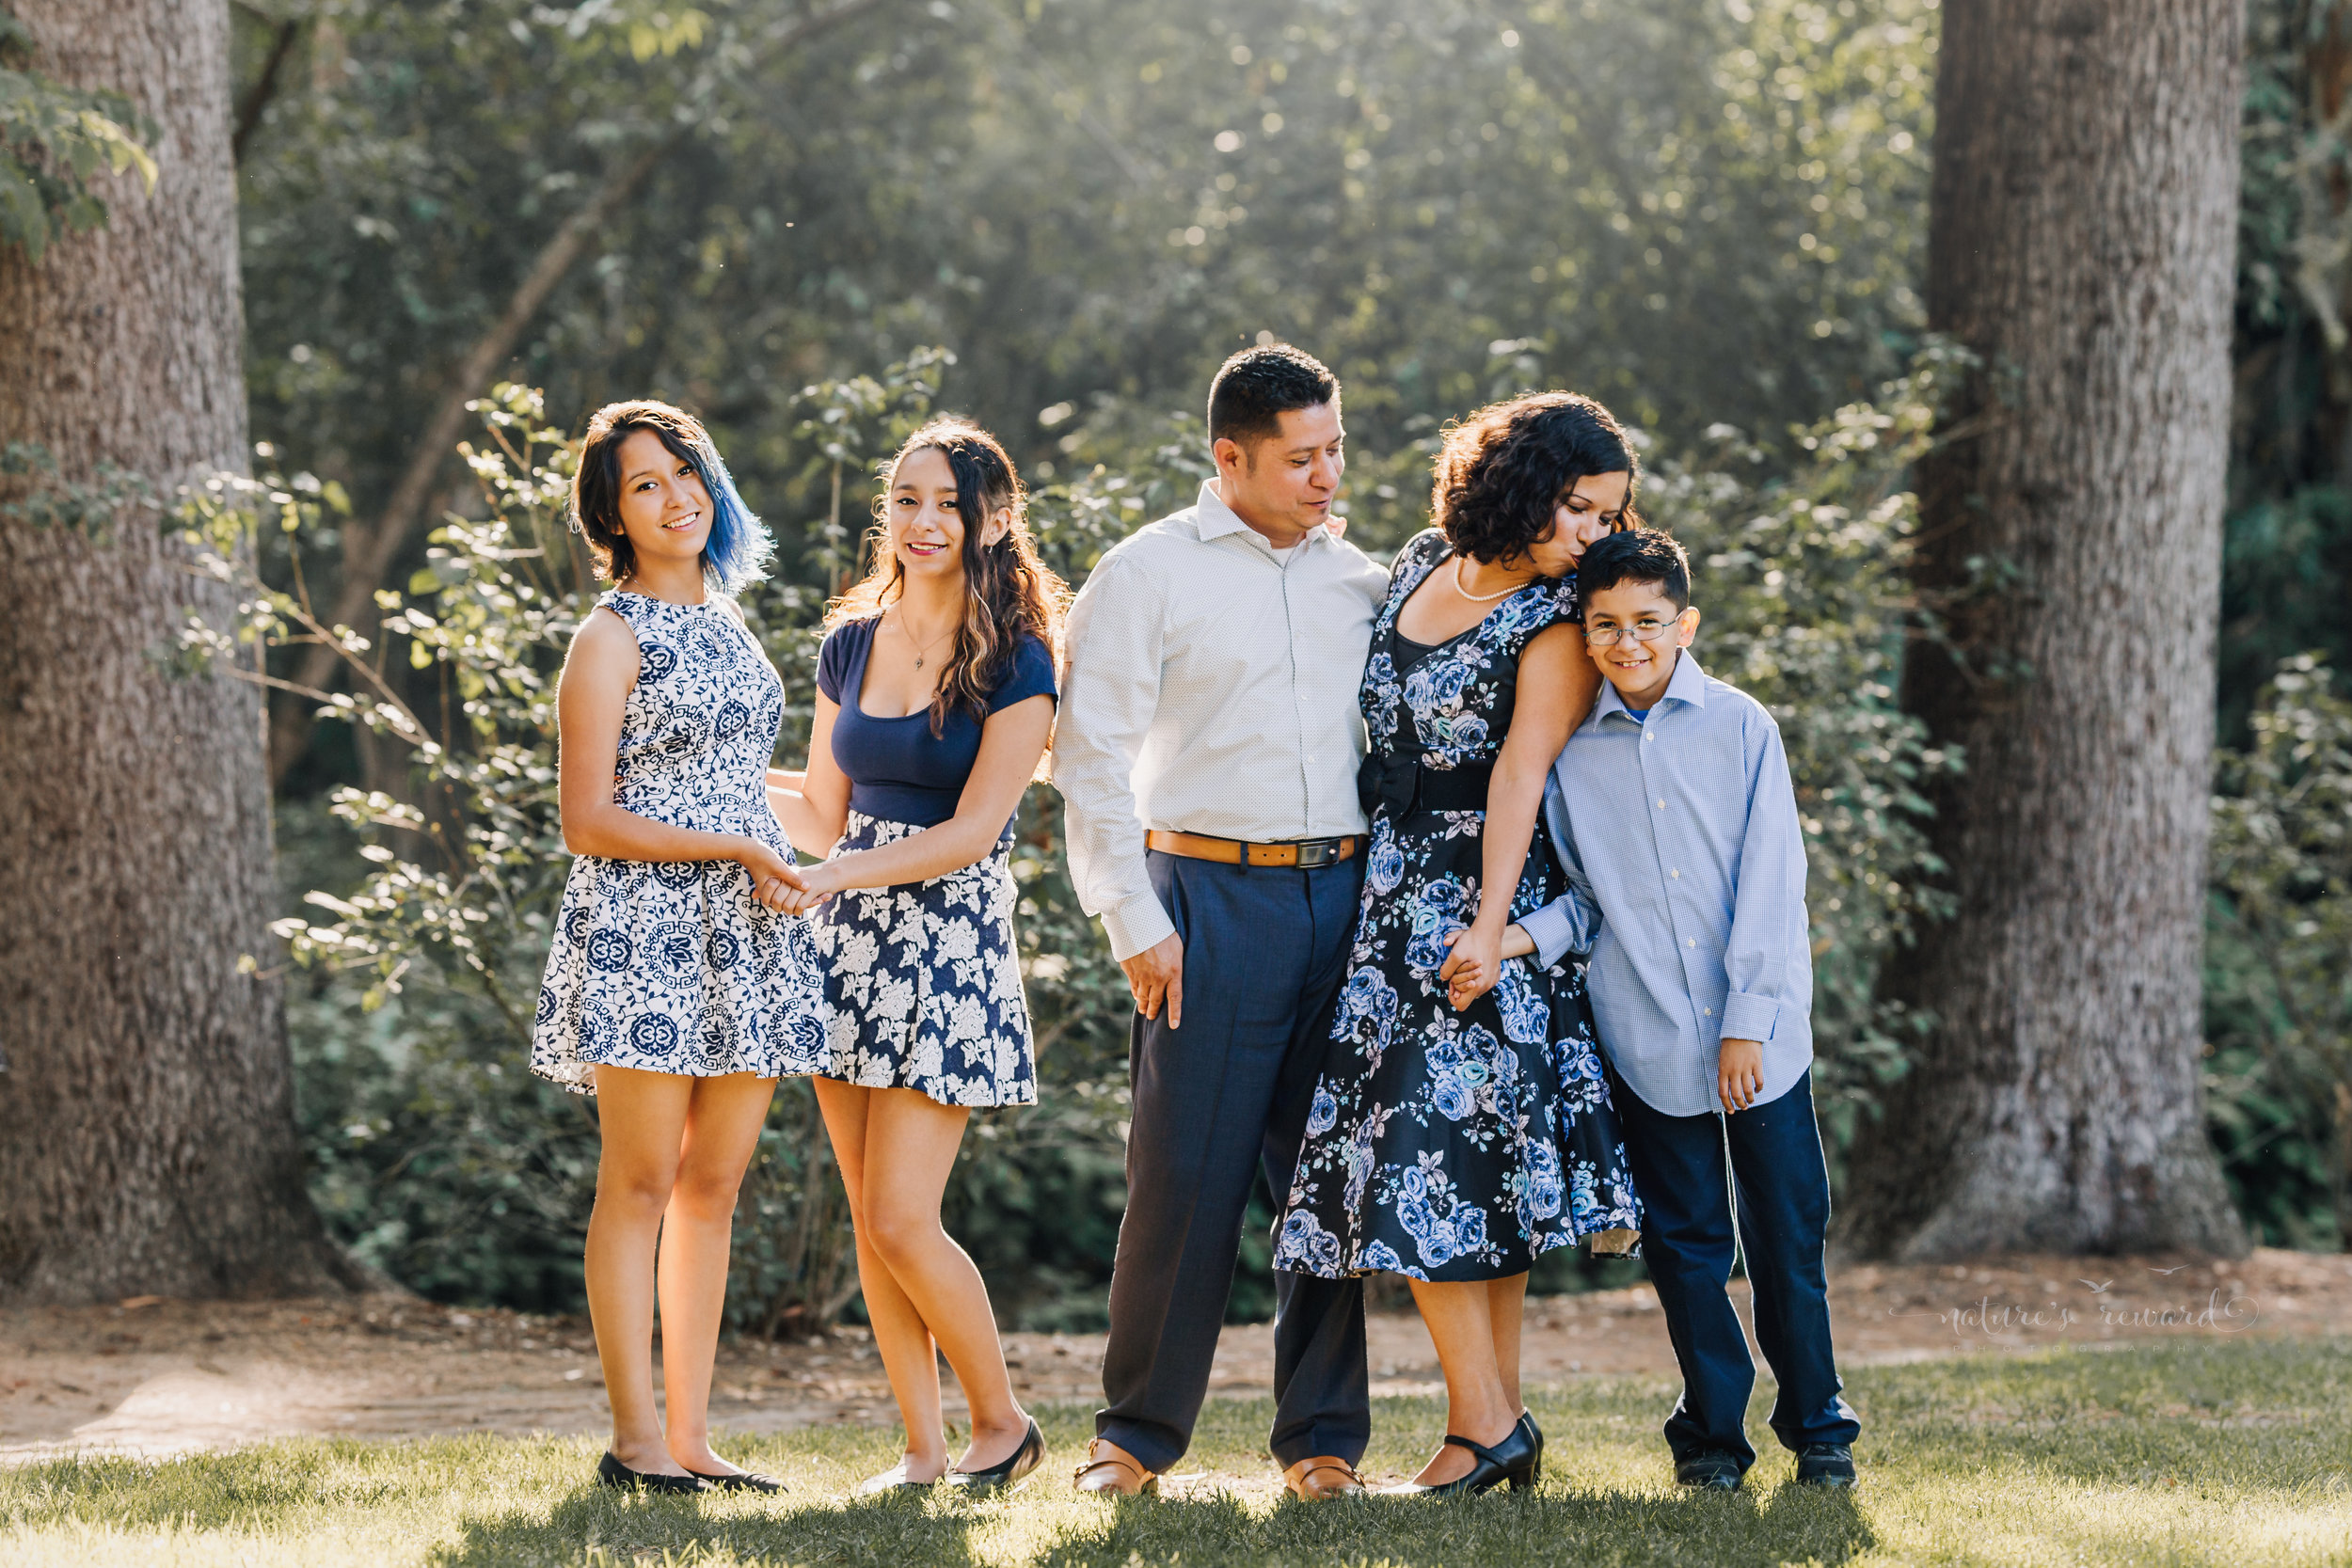 Mom kisses her beautiful baby boy.Beautiful family wearing blues and blue florals dresses in this gorgeous family photography portrait by Nature's Reward Photography.